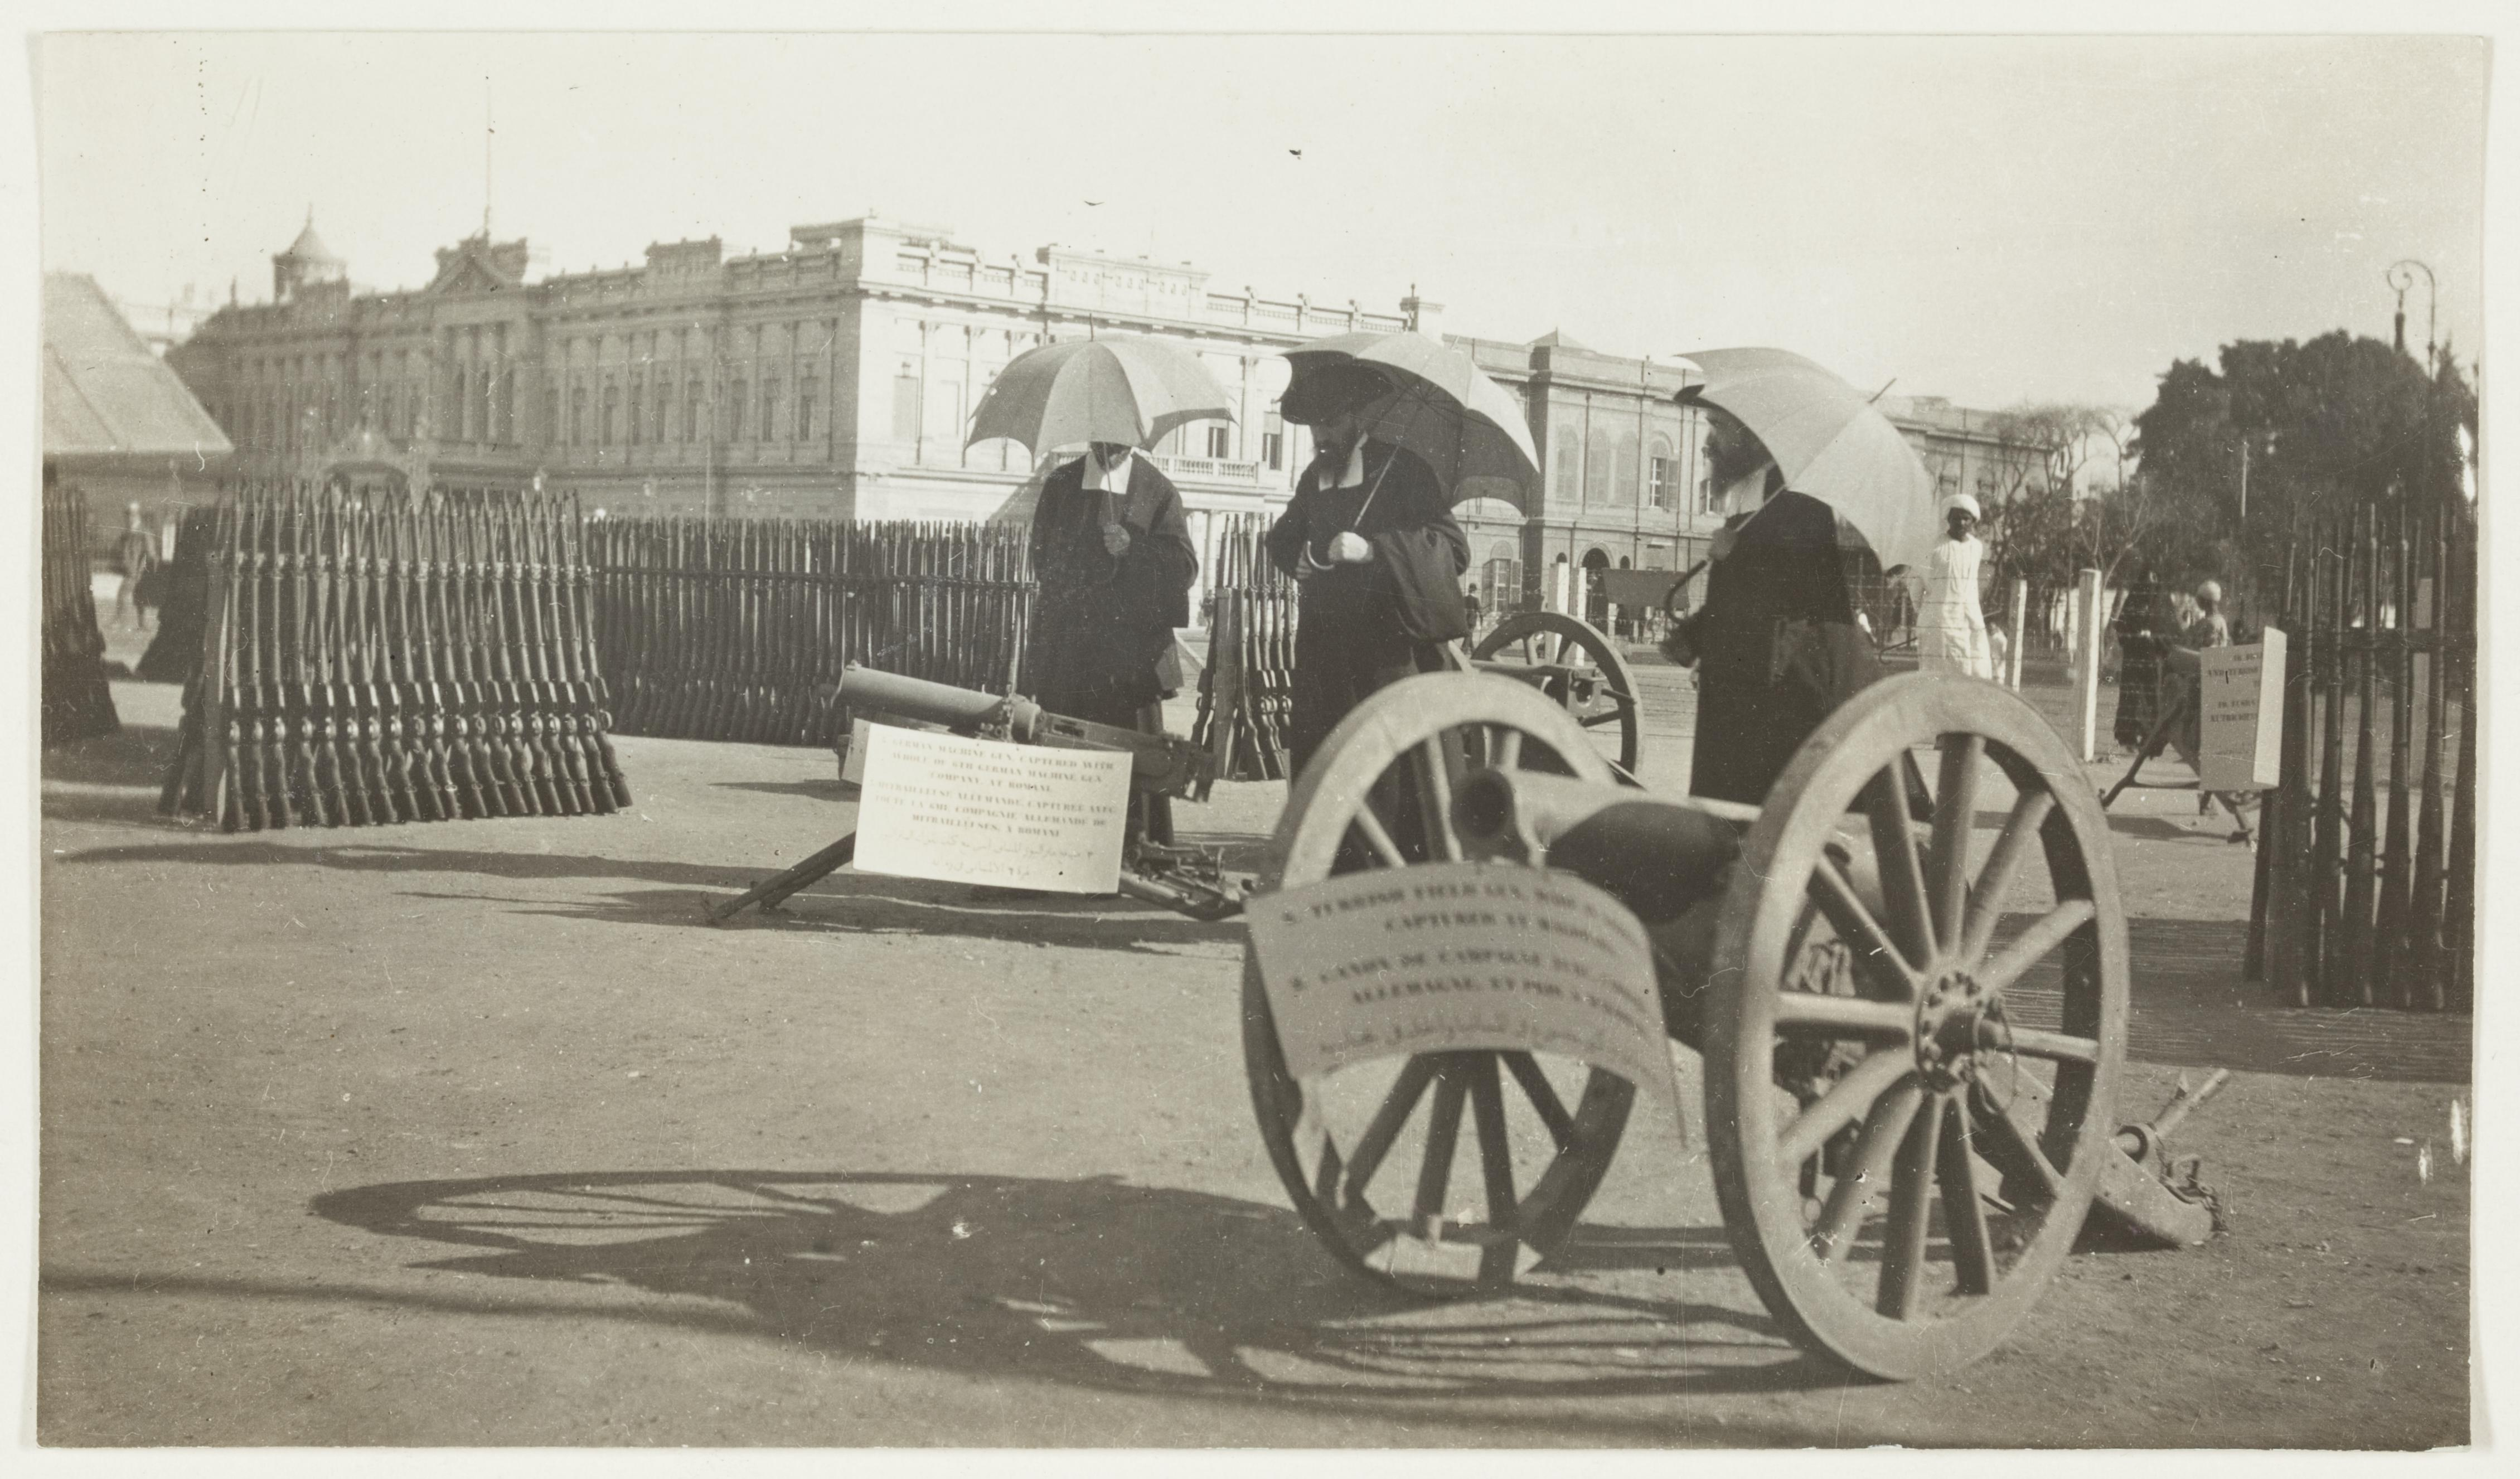 Guns captured at Beersheba  by J.F. Smith of the 7th Light Horse in Egypt and Palestine, c. 1914-1918